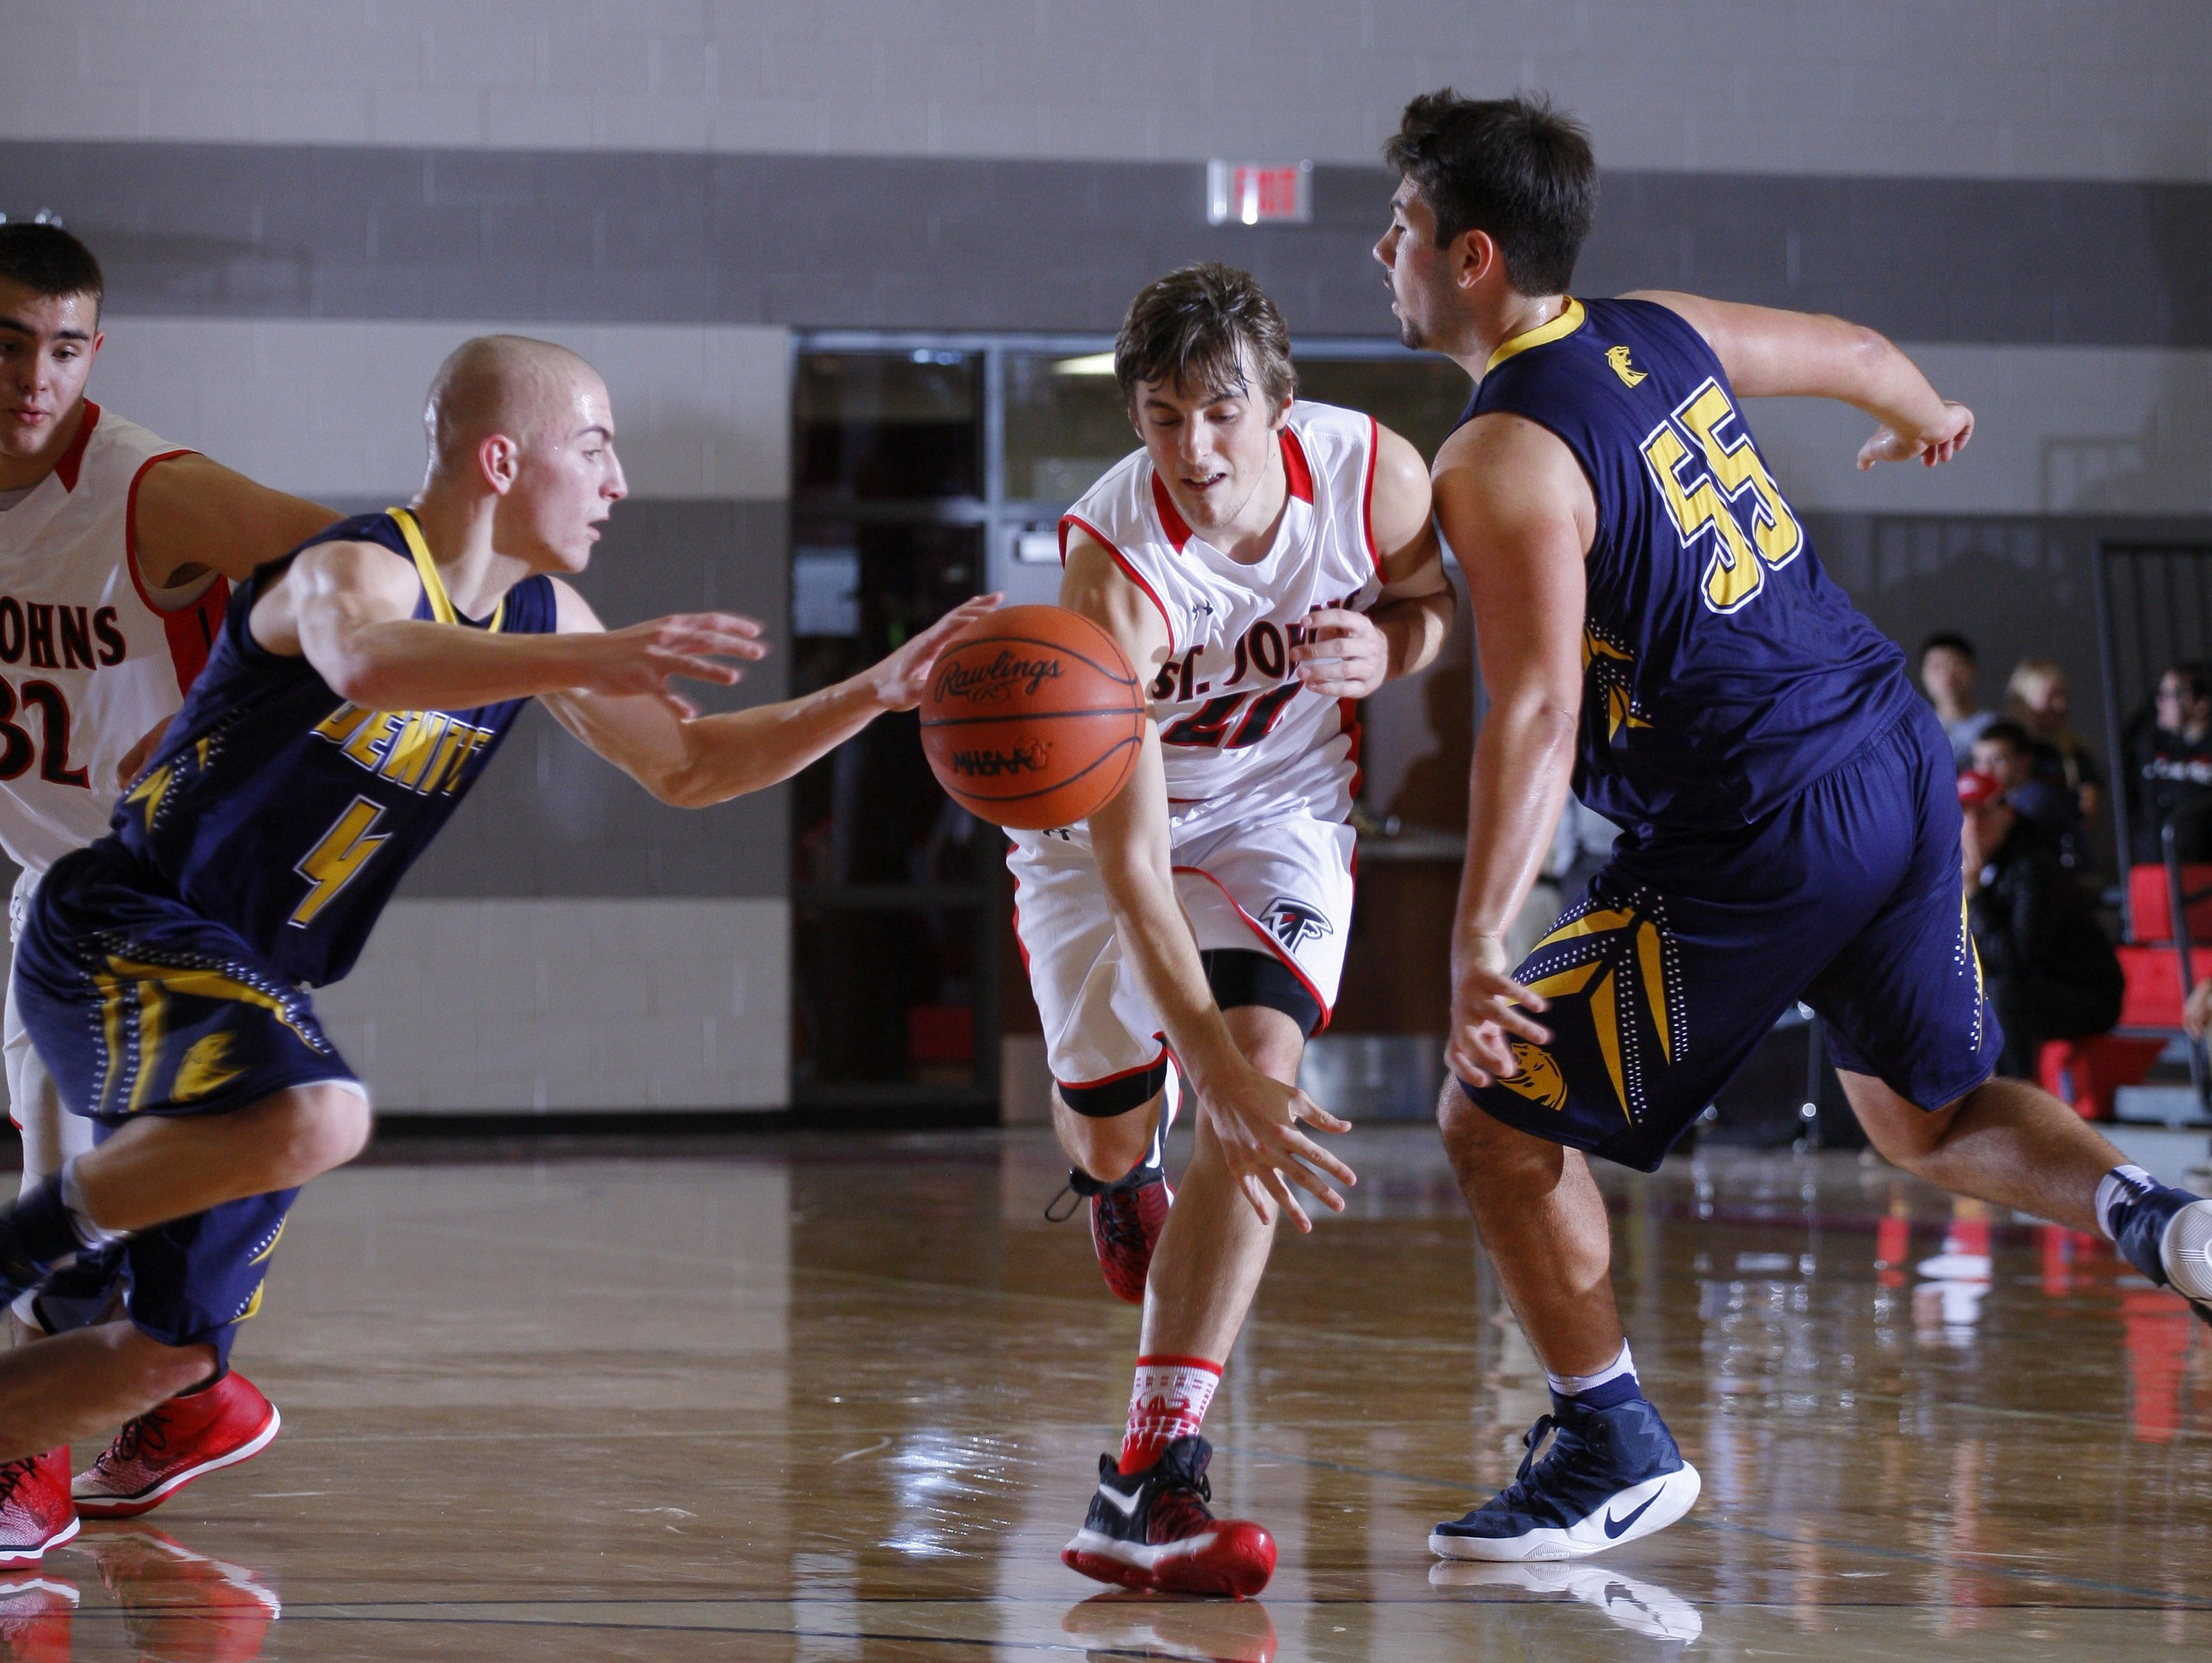 DeWitt's Nathan Flannery, left, and Alec Guillaume (55) and St. Johns' Ben Feldpausch, center, vie for the ball Friday, Dec. 16, 2016, in St. Johns, Mich.